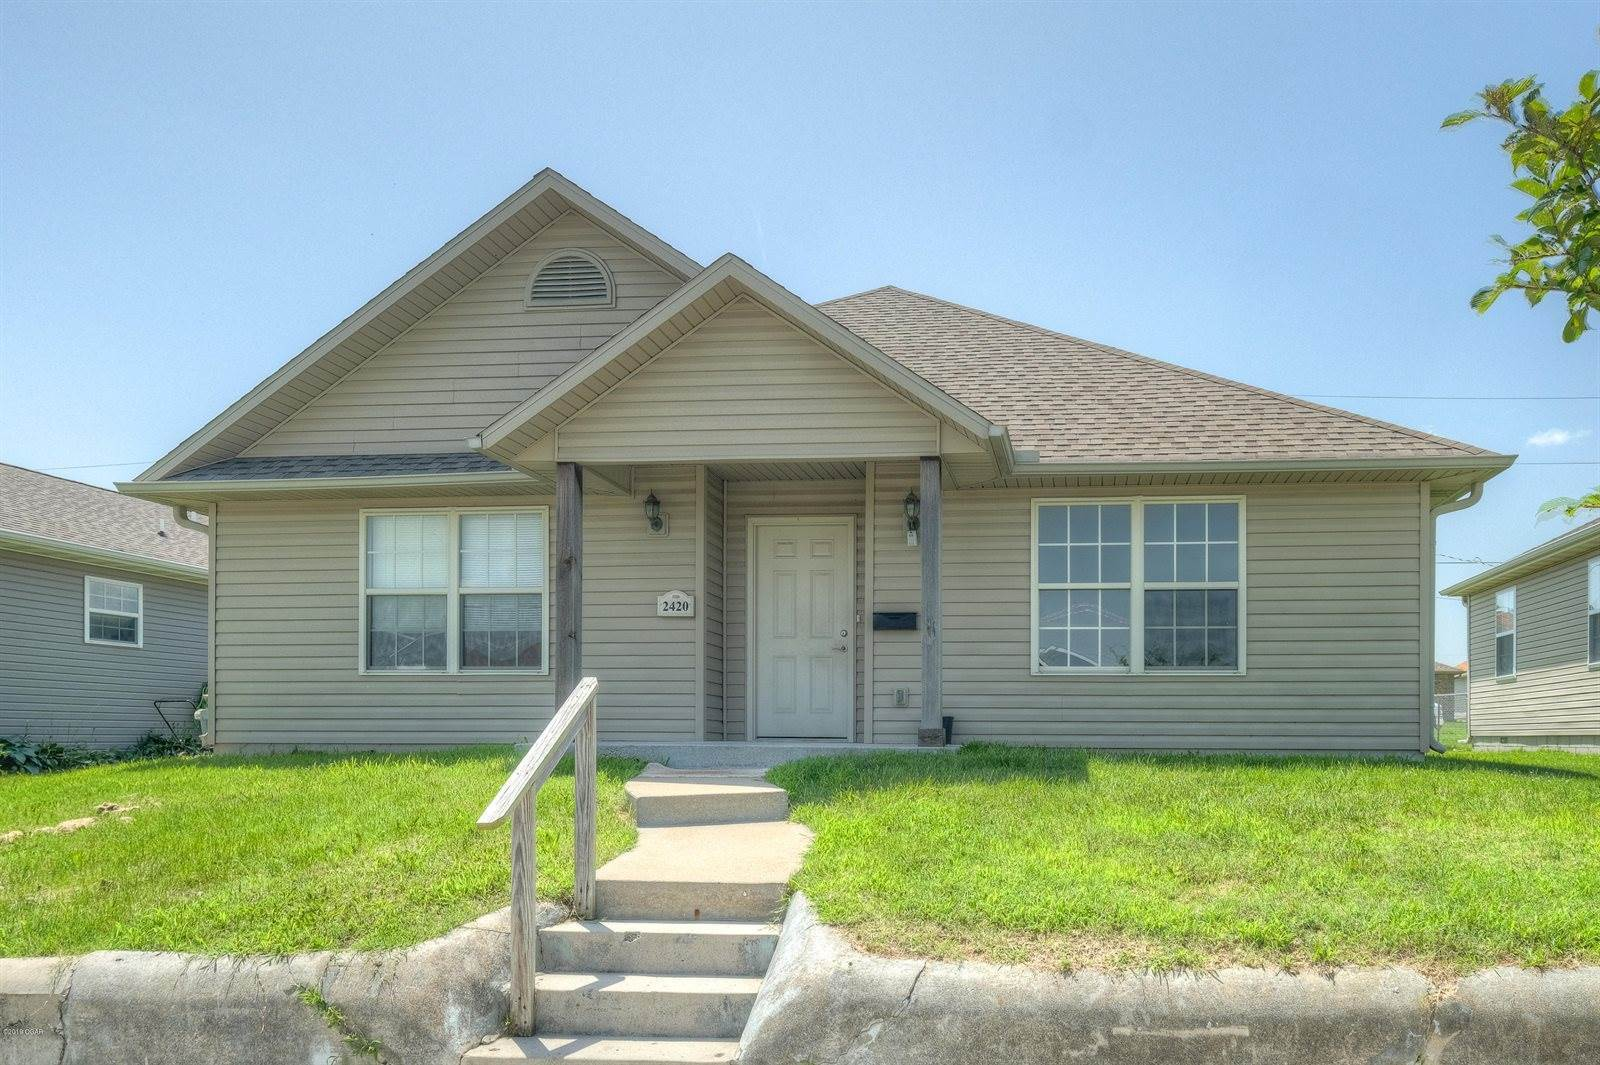 2420 South Empire Avenue, Joplin, MO 64804